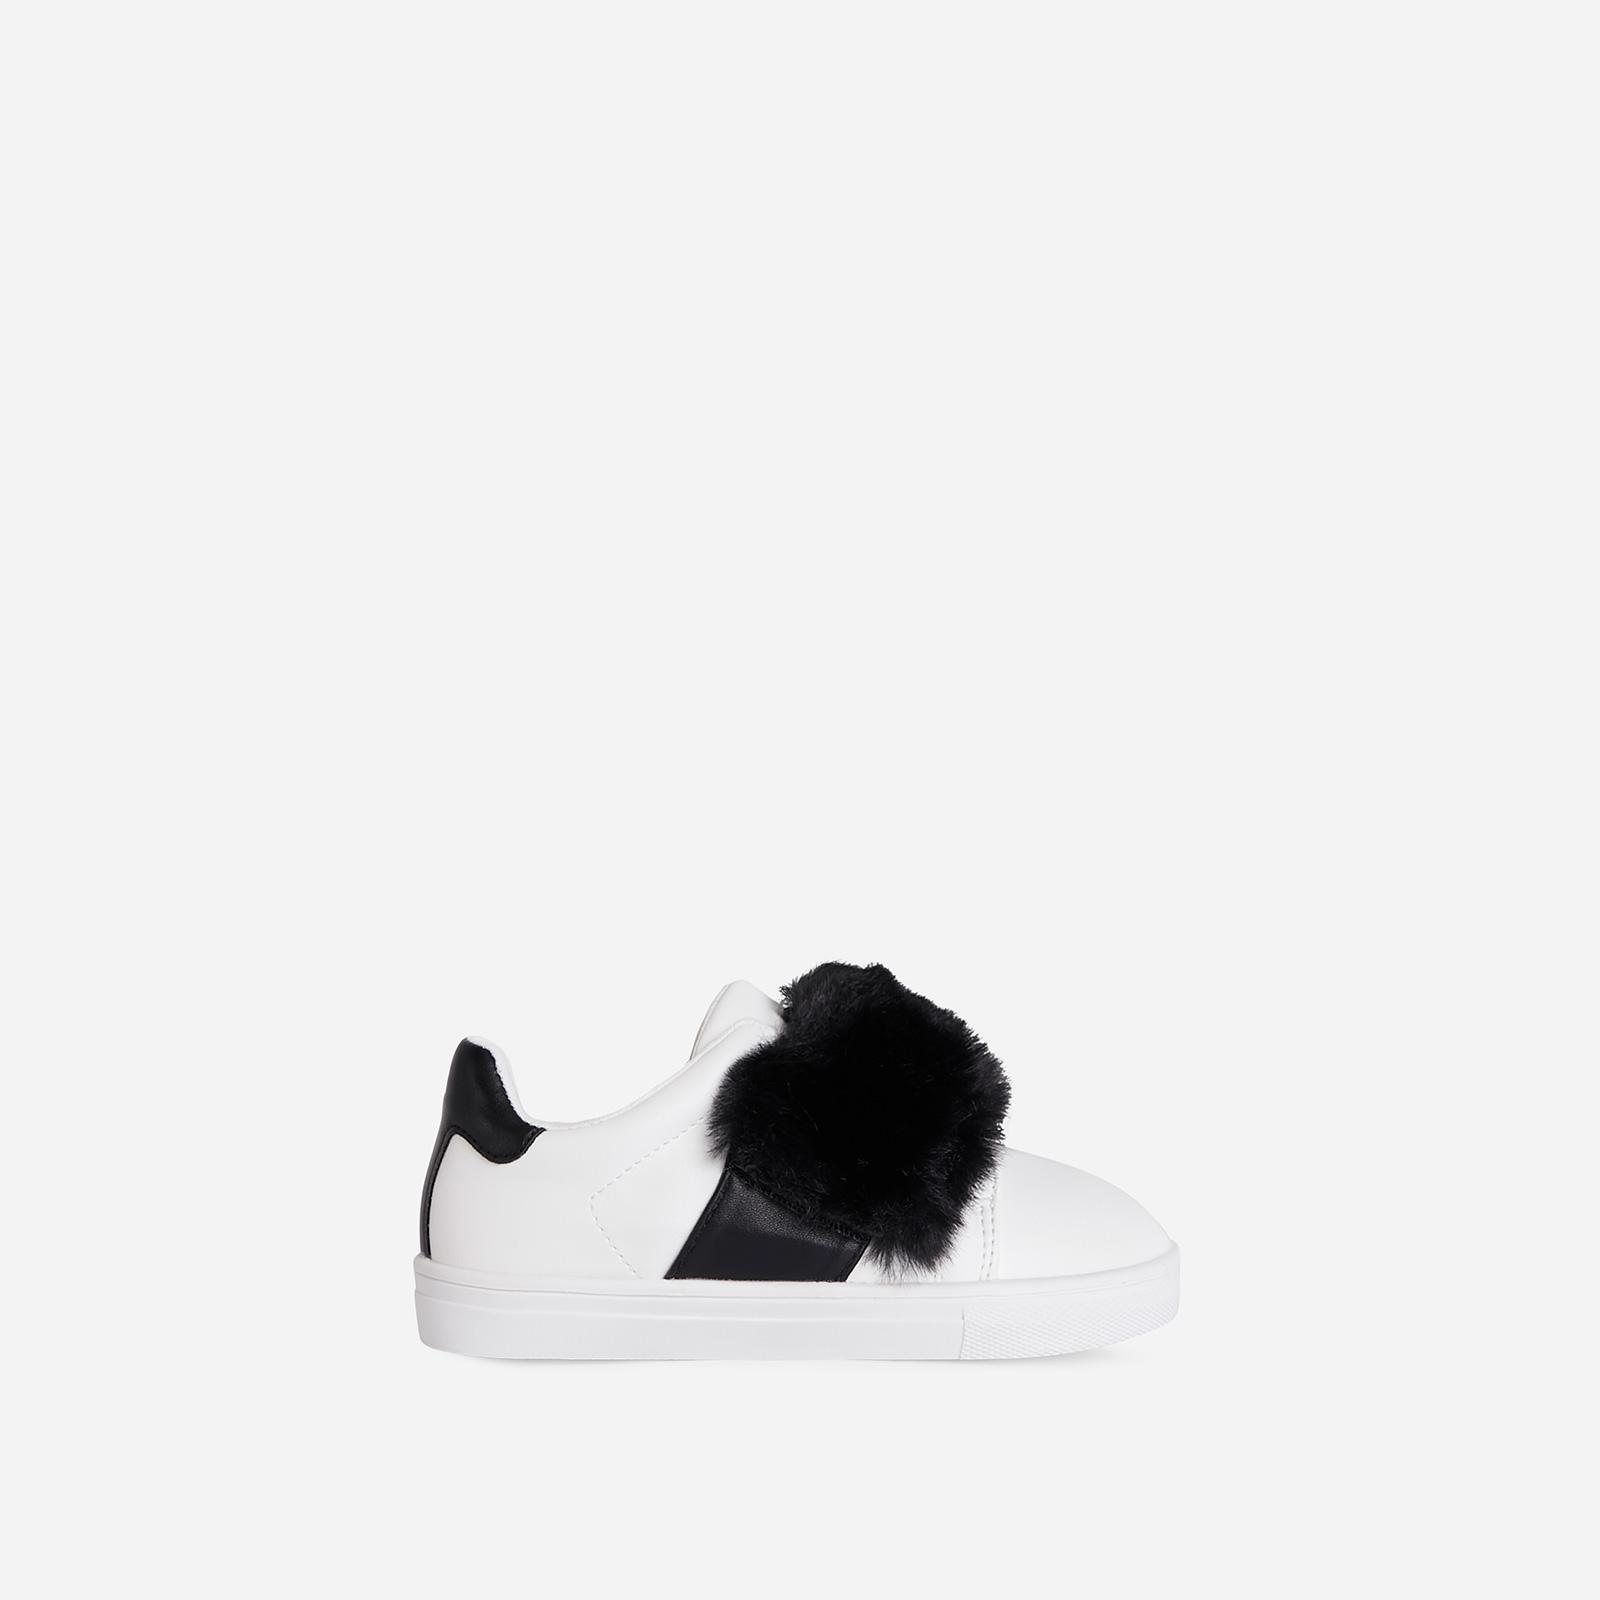 Plush-Baby Kid's Black Fluffy Stripe Trainer In White Faux Leather Kid's, White